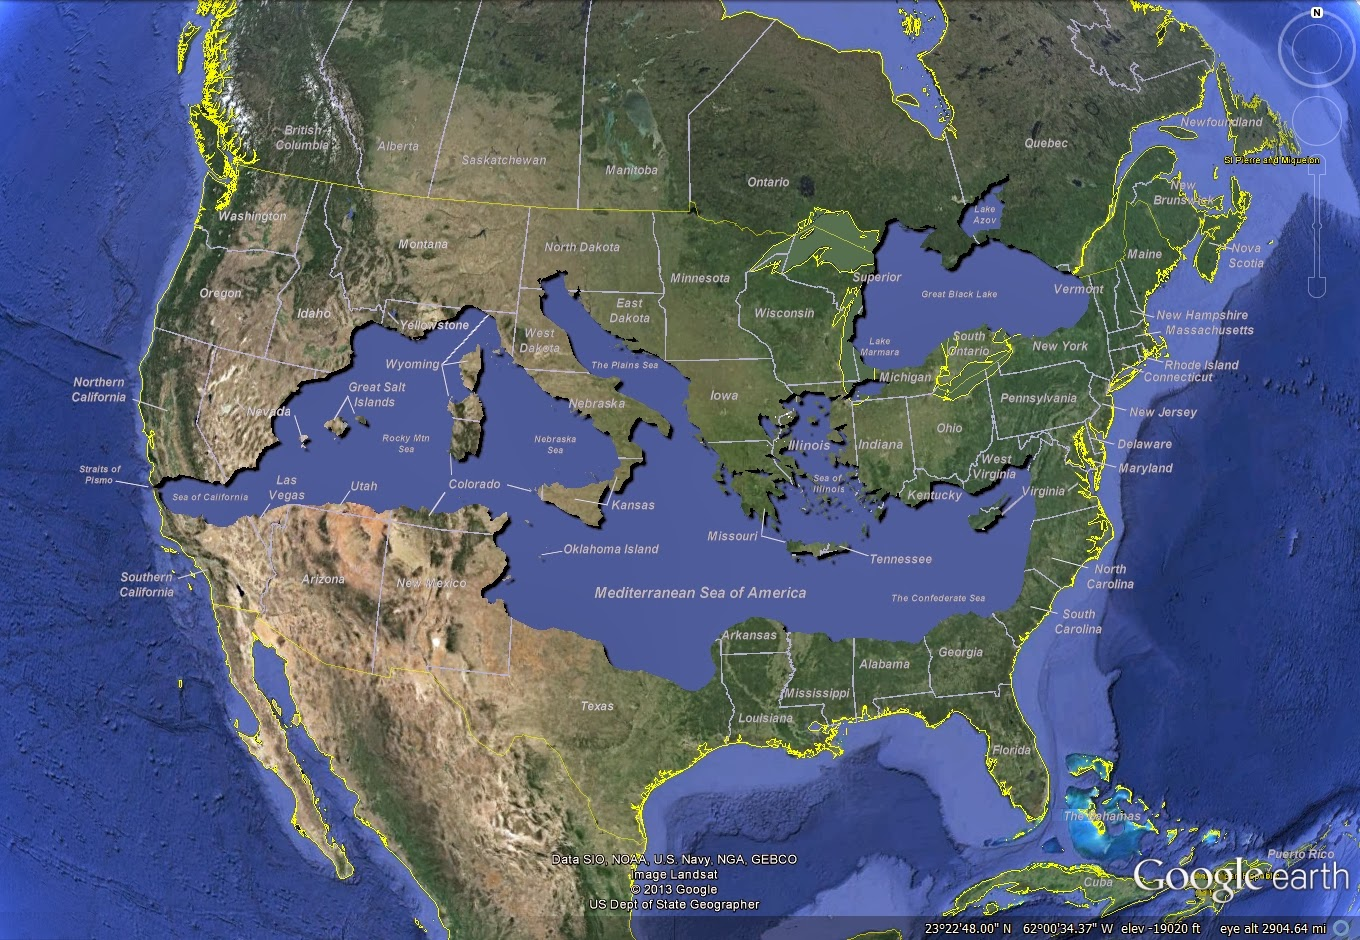 The+Mediterranean+Sea+of+America+-+google+earth.jpg